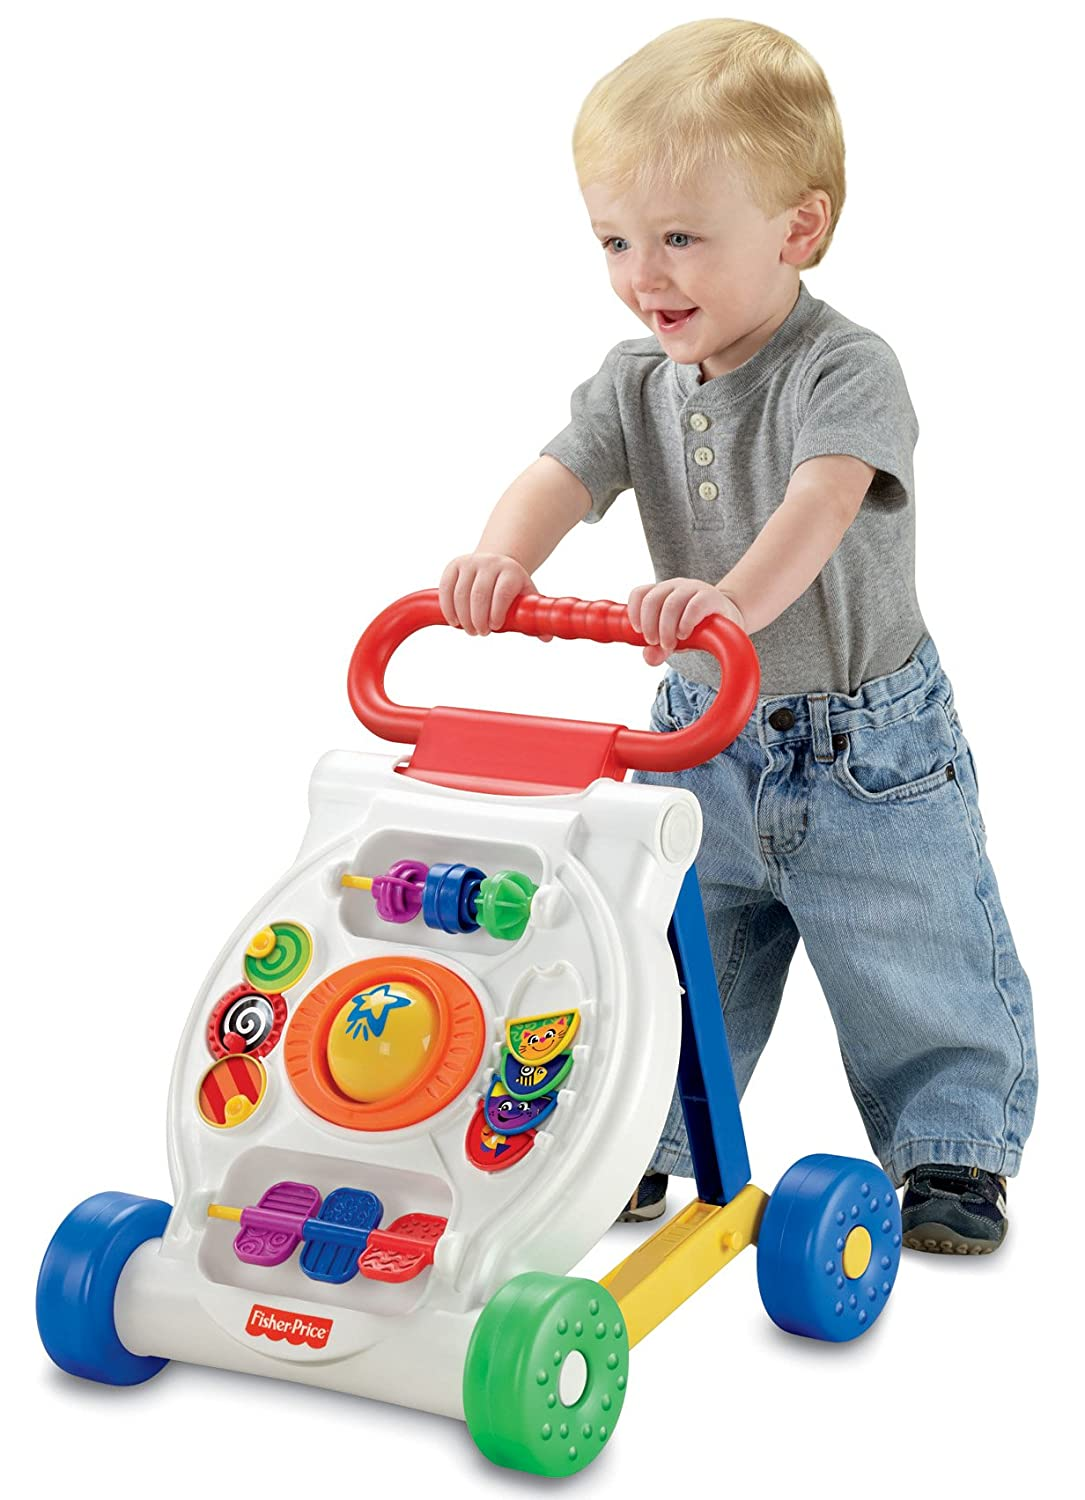 Amazon.com: learn to walk push toys: Toys & Games